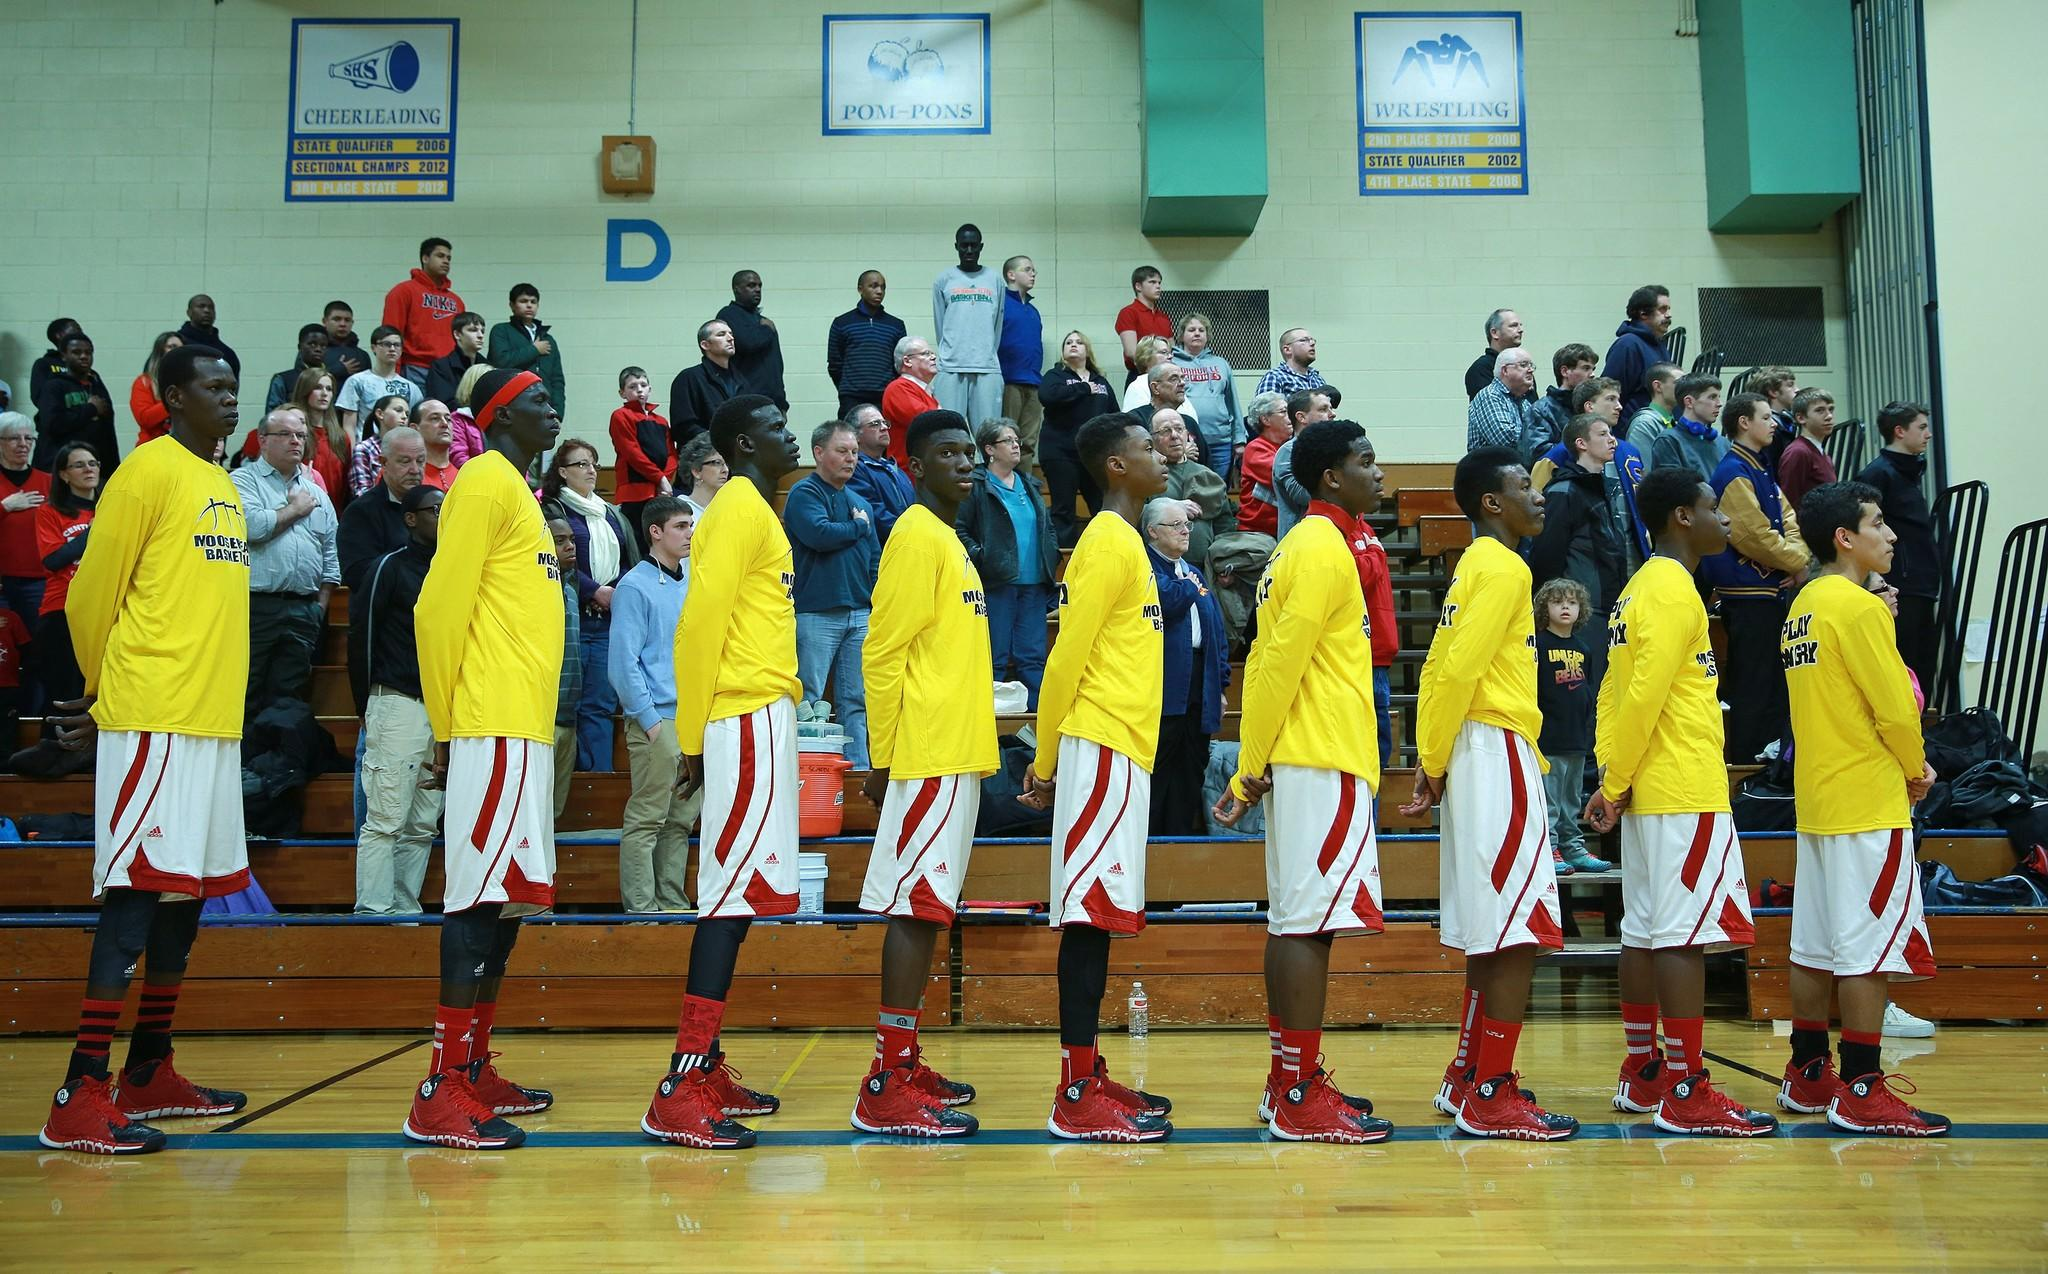 The Mooseheart High School basketball team stands for the national anthem before a playoff game against Serena High School at Somonauk High School on Feb. 26.